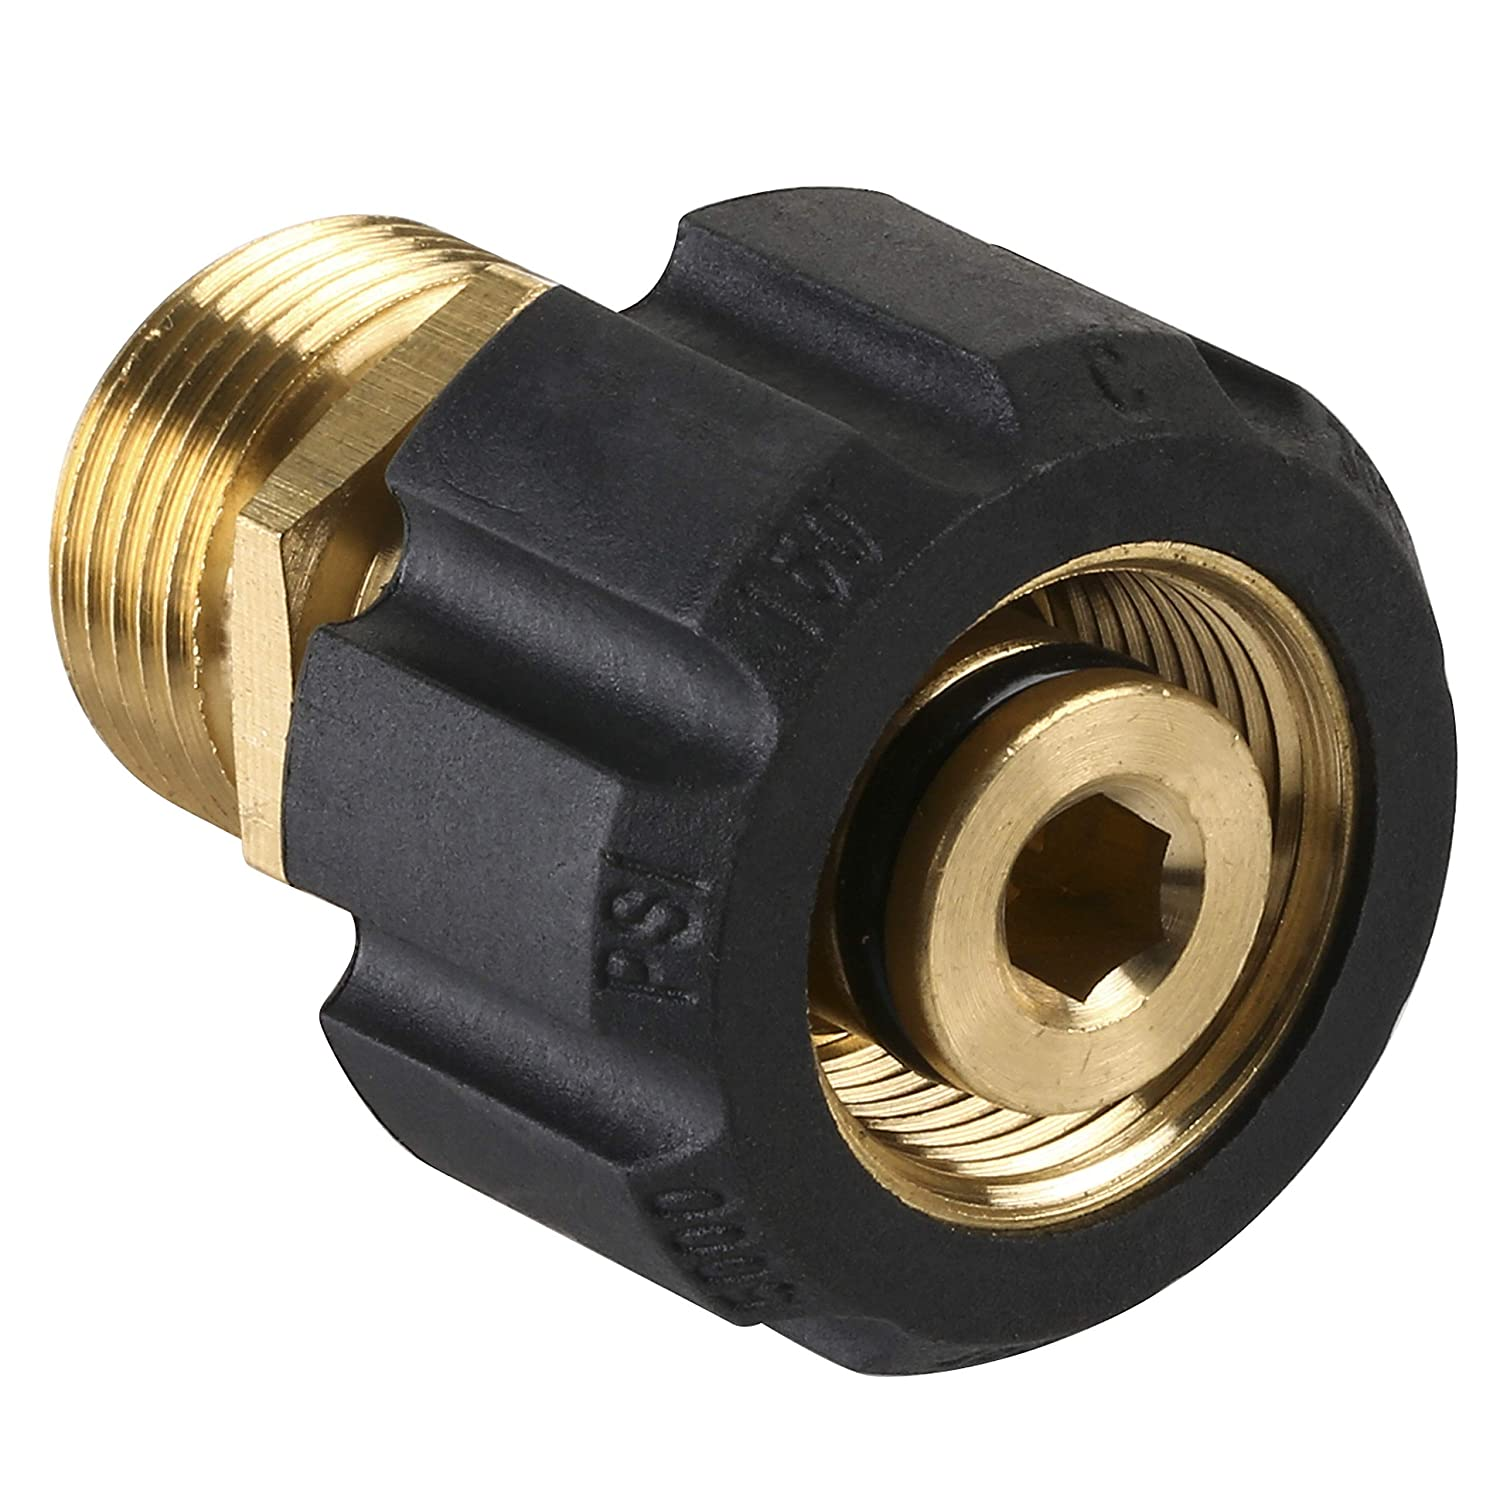 Mingle Pressure Washer Adapter, Metric M22 15mm Female Thread to M22 14mm Male Fitting, 4500 PSI